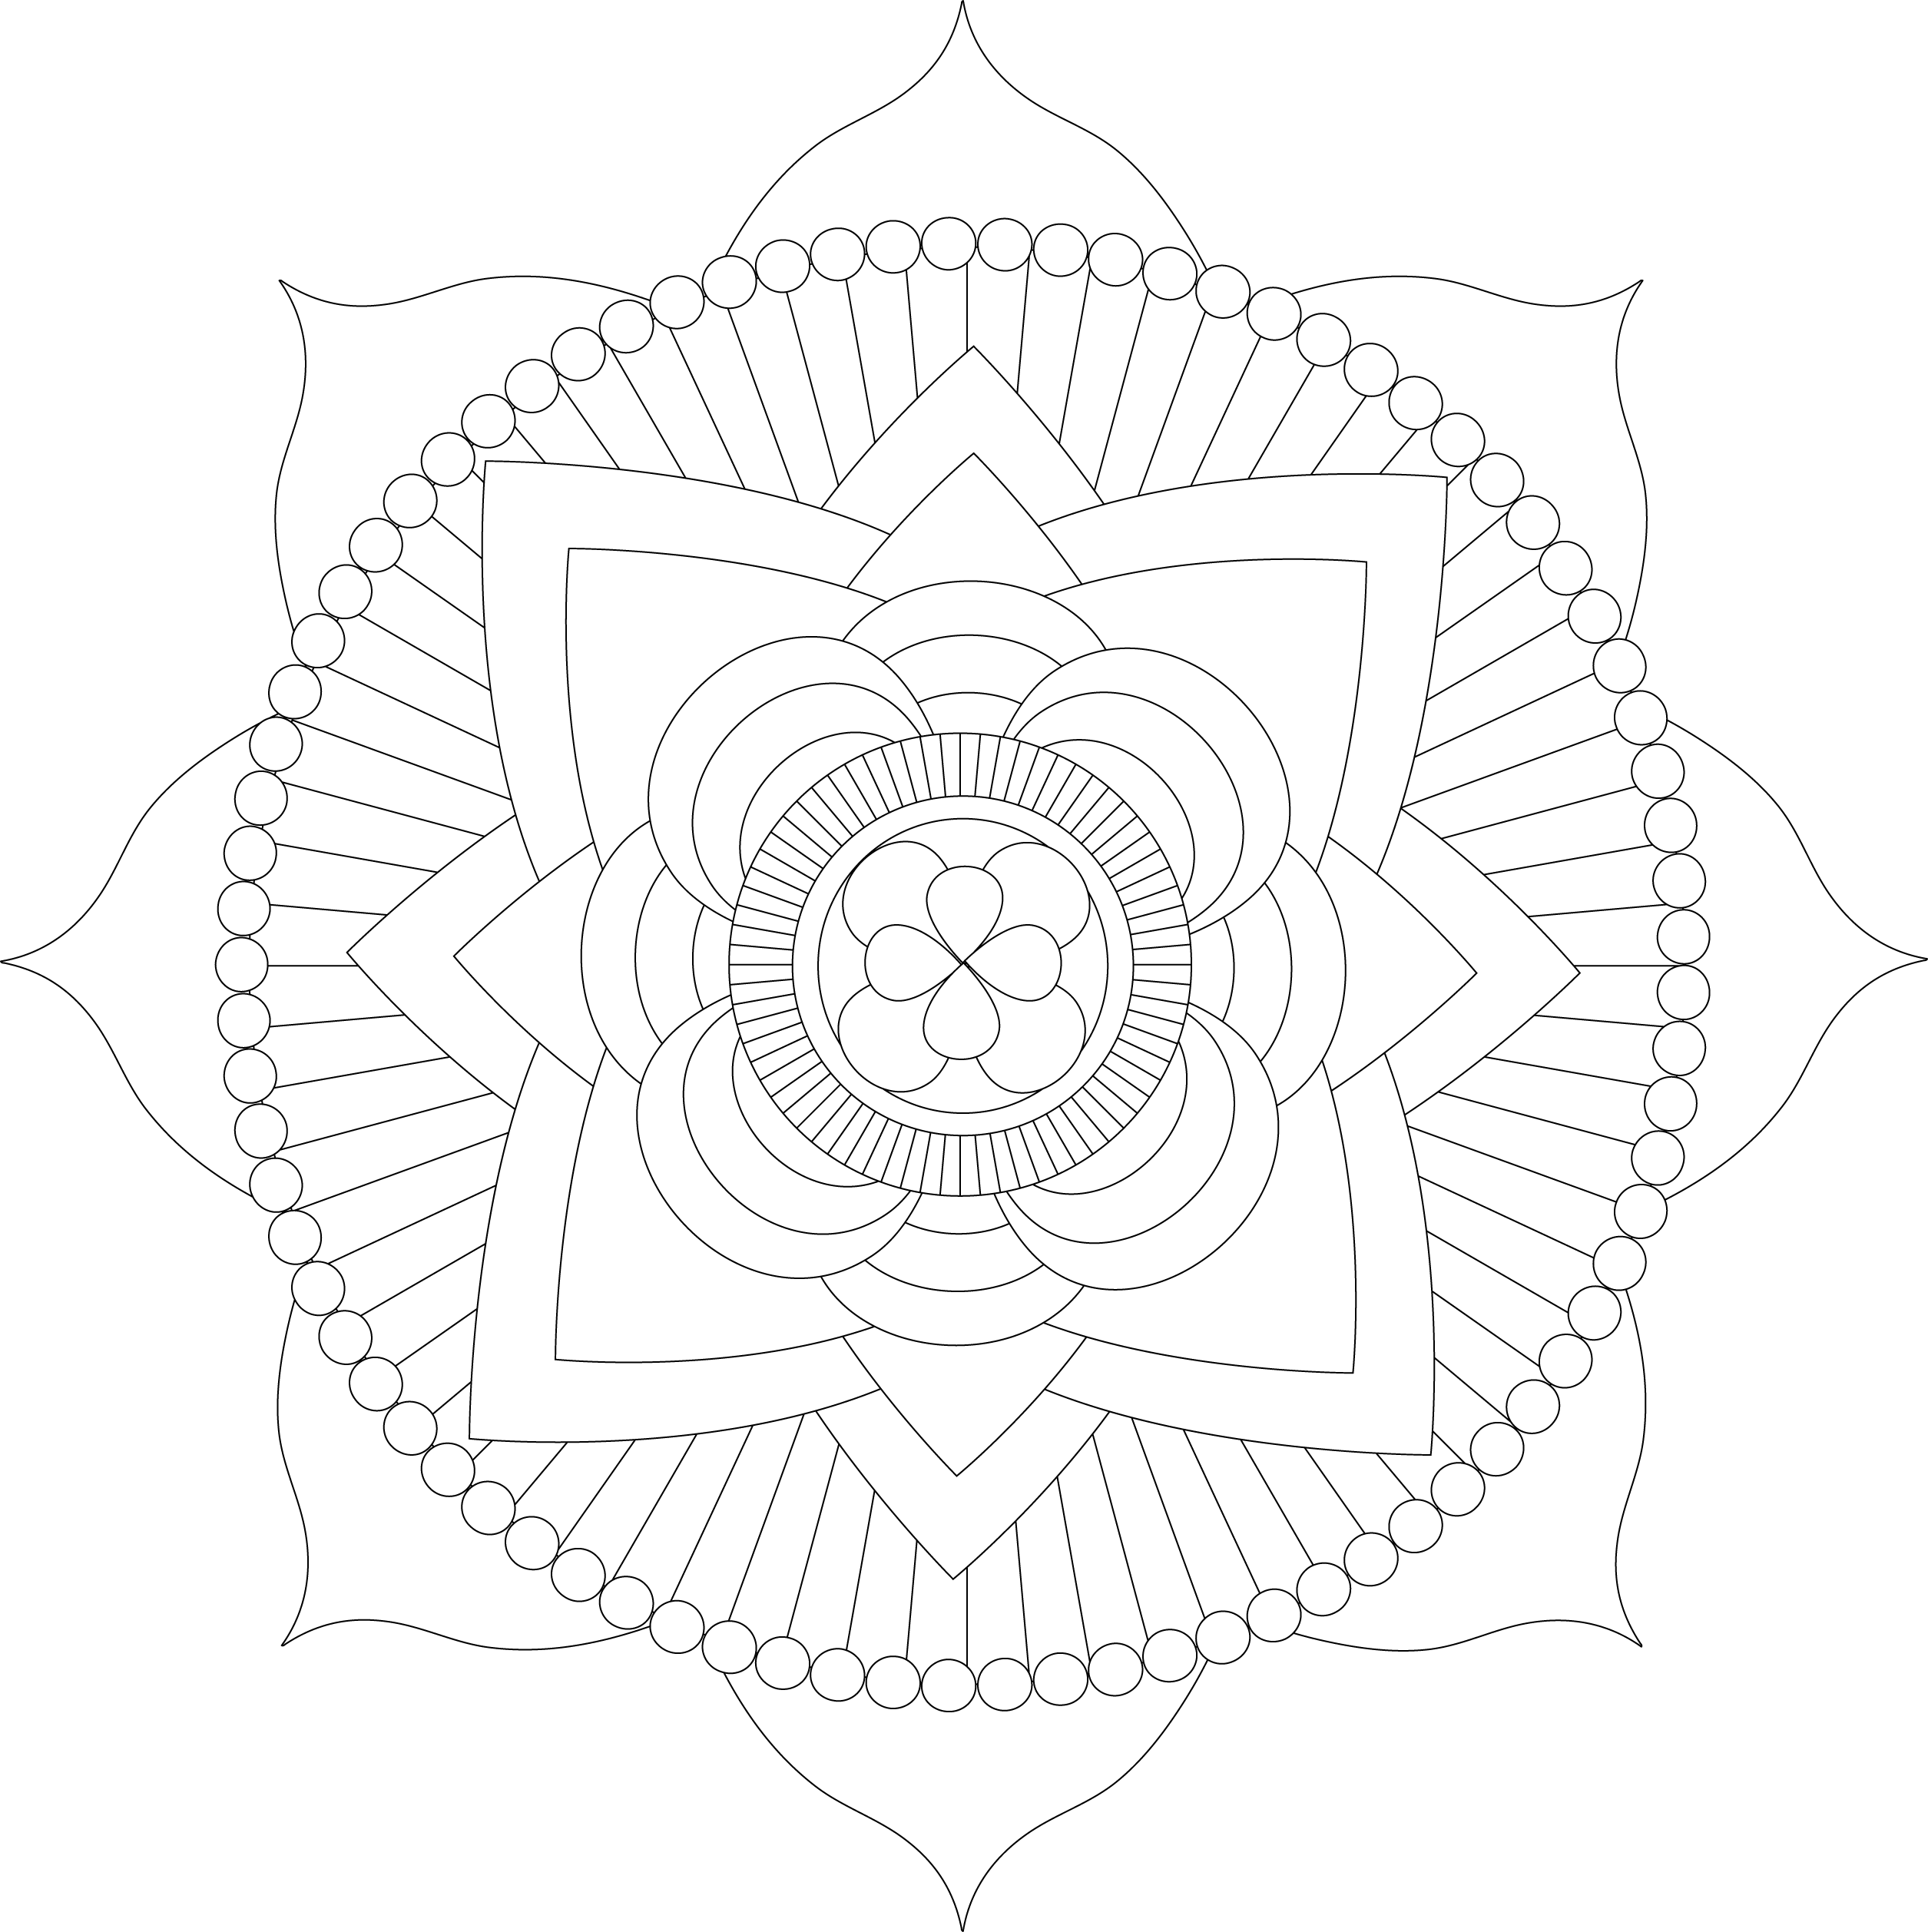 free printable mandalas to color for adults 20 free printable mandala coloring pages for adults mandalas printable for color to adults free